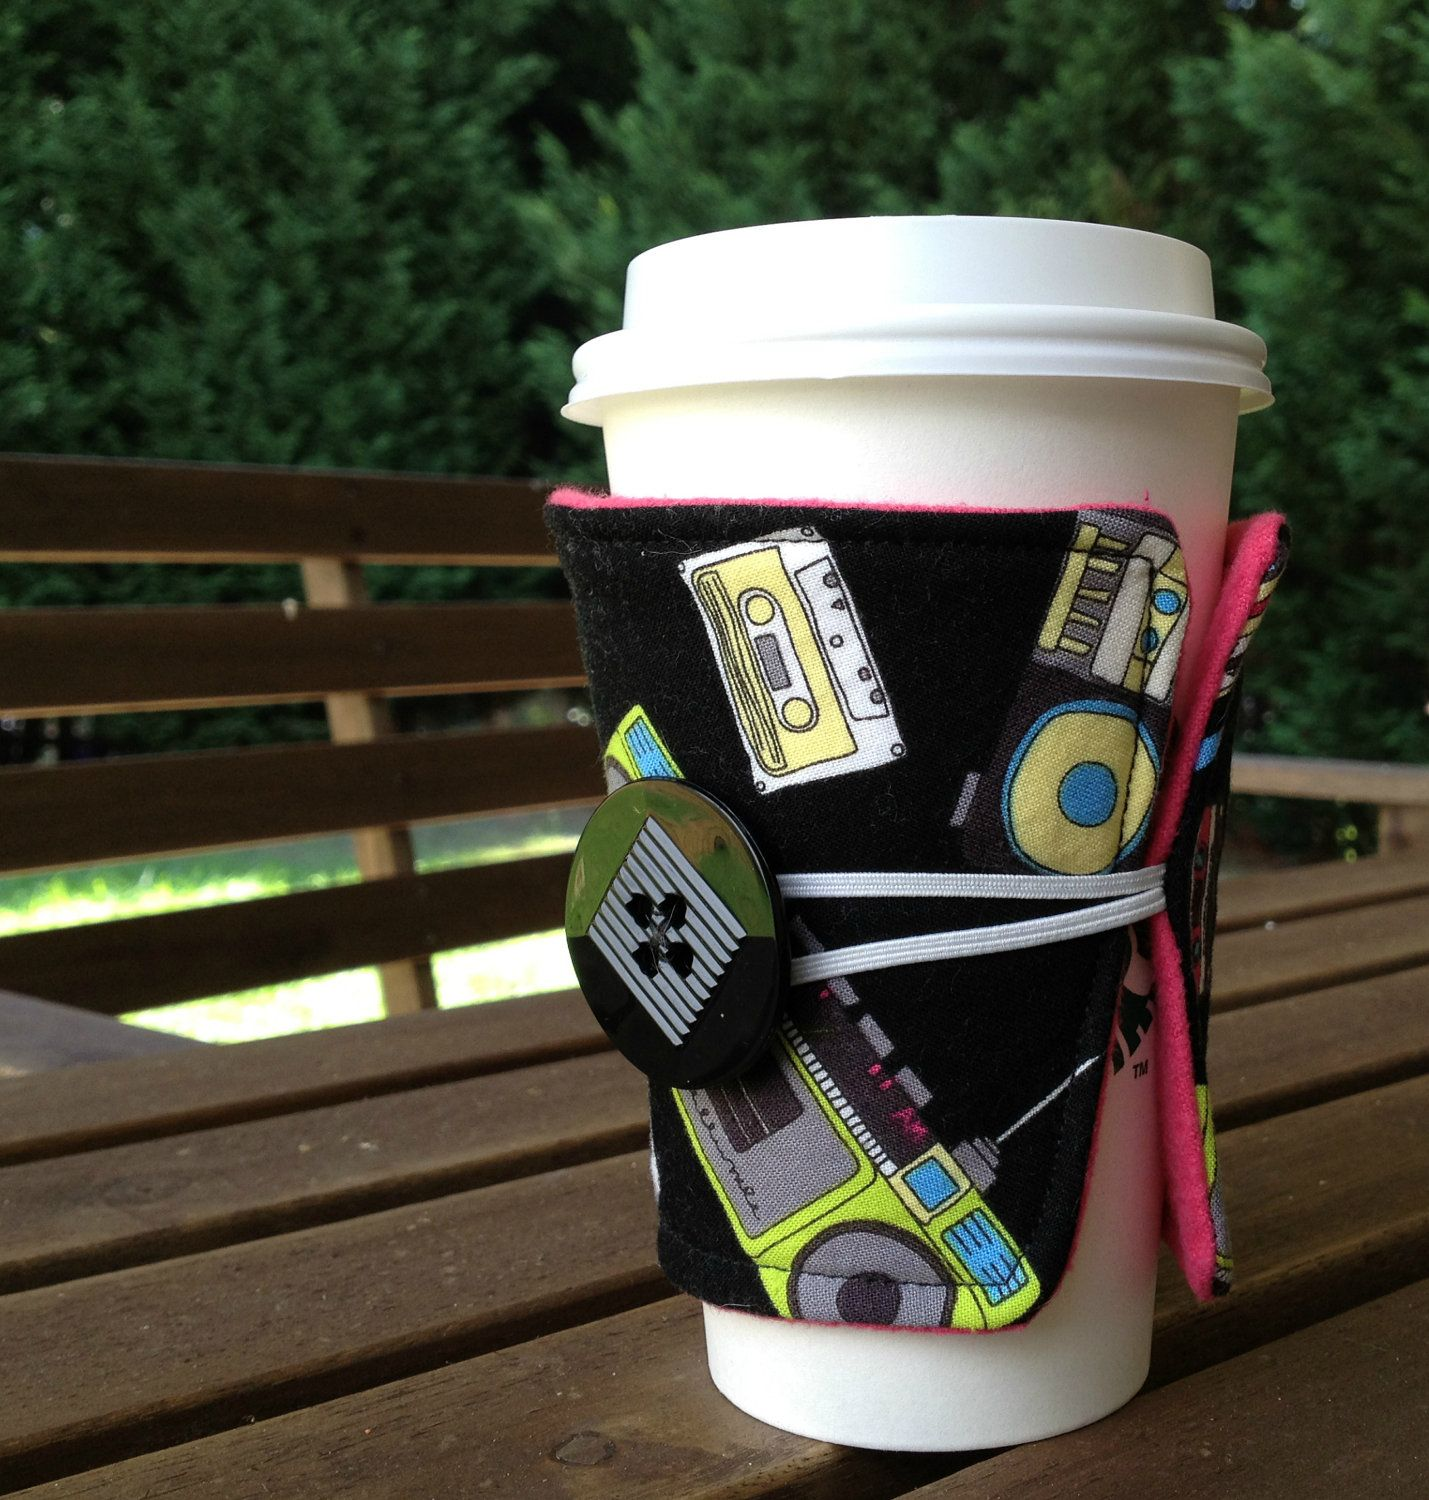 Drink Coffee.  Be Green.  Look Rad with the Bugaroo Fabric Coffee Cozy - Retro Boomboxes with Hot Pink Flannel Lining. $6.50, via Etsy.